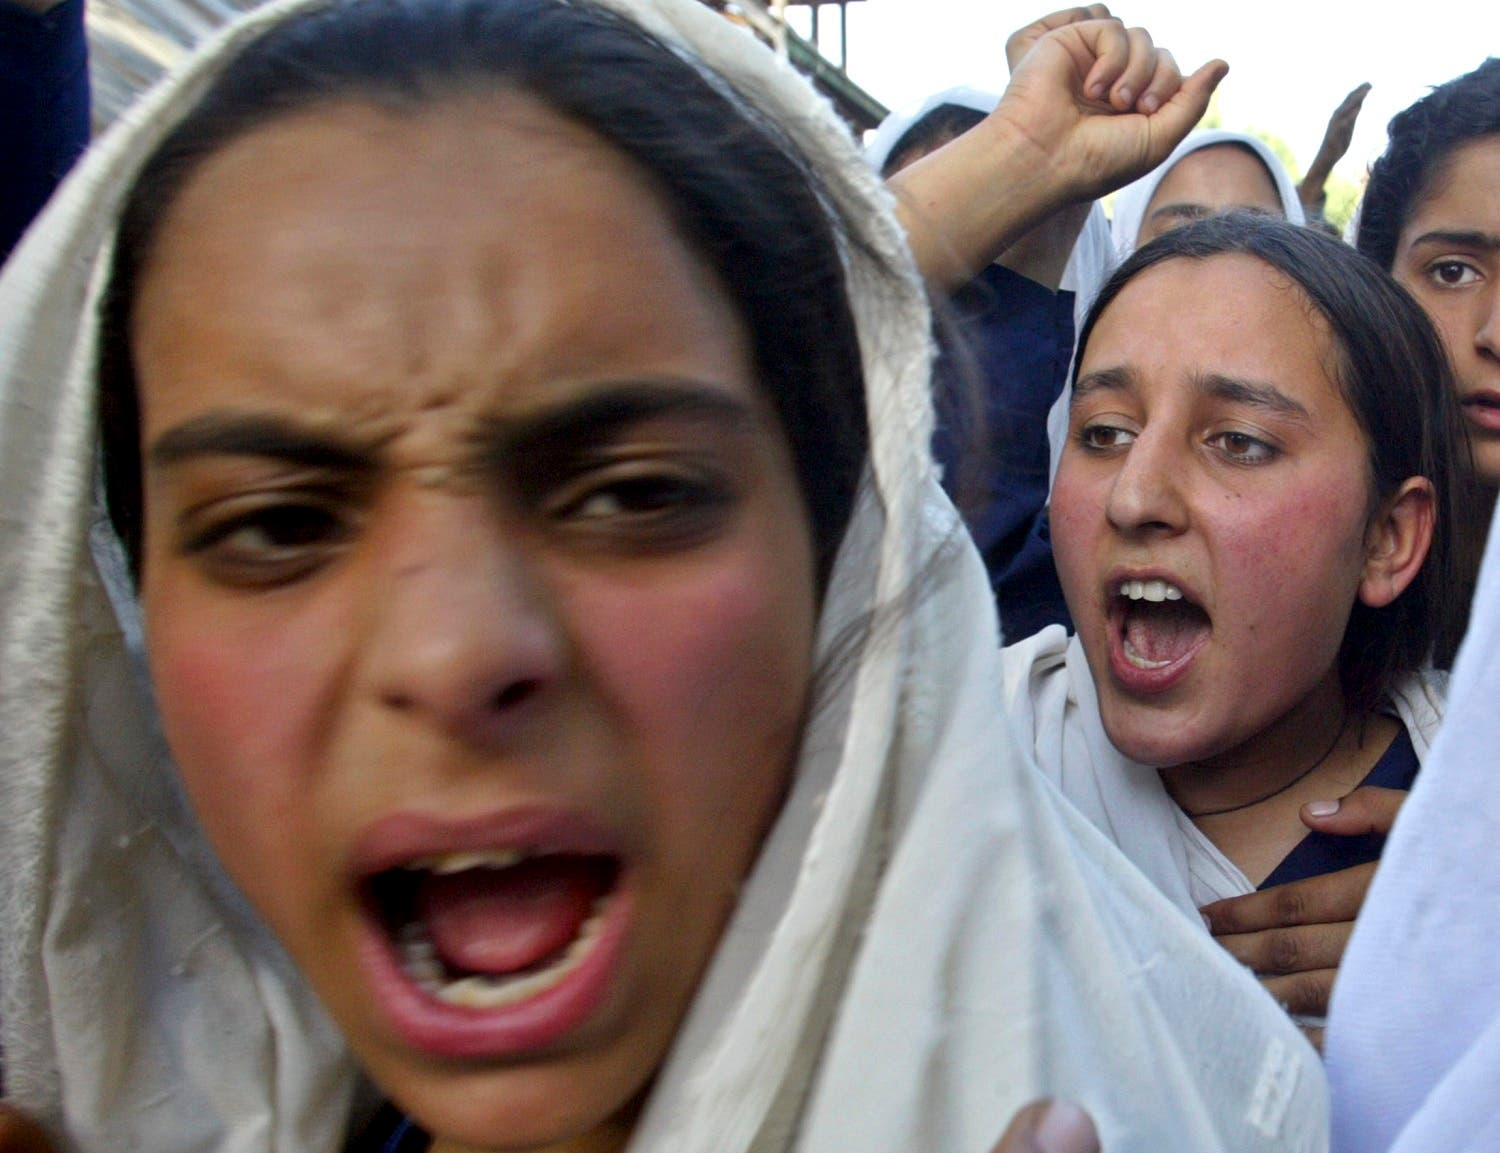 Kashmiri school girls shout slogans against the Indian army during a protest in Pattan, near Srinagar, May 27, 2006. (Reuters)